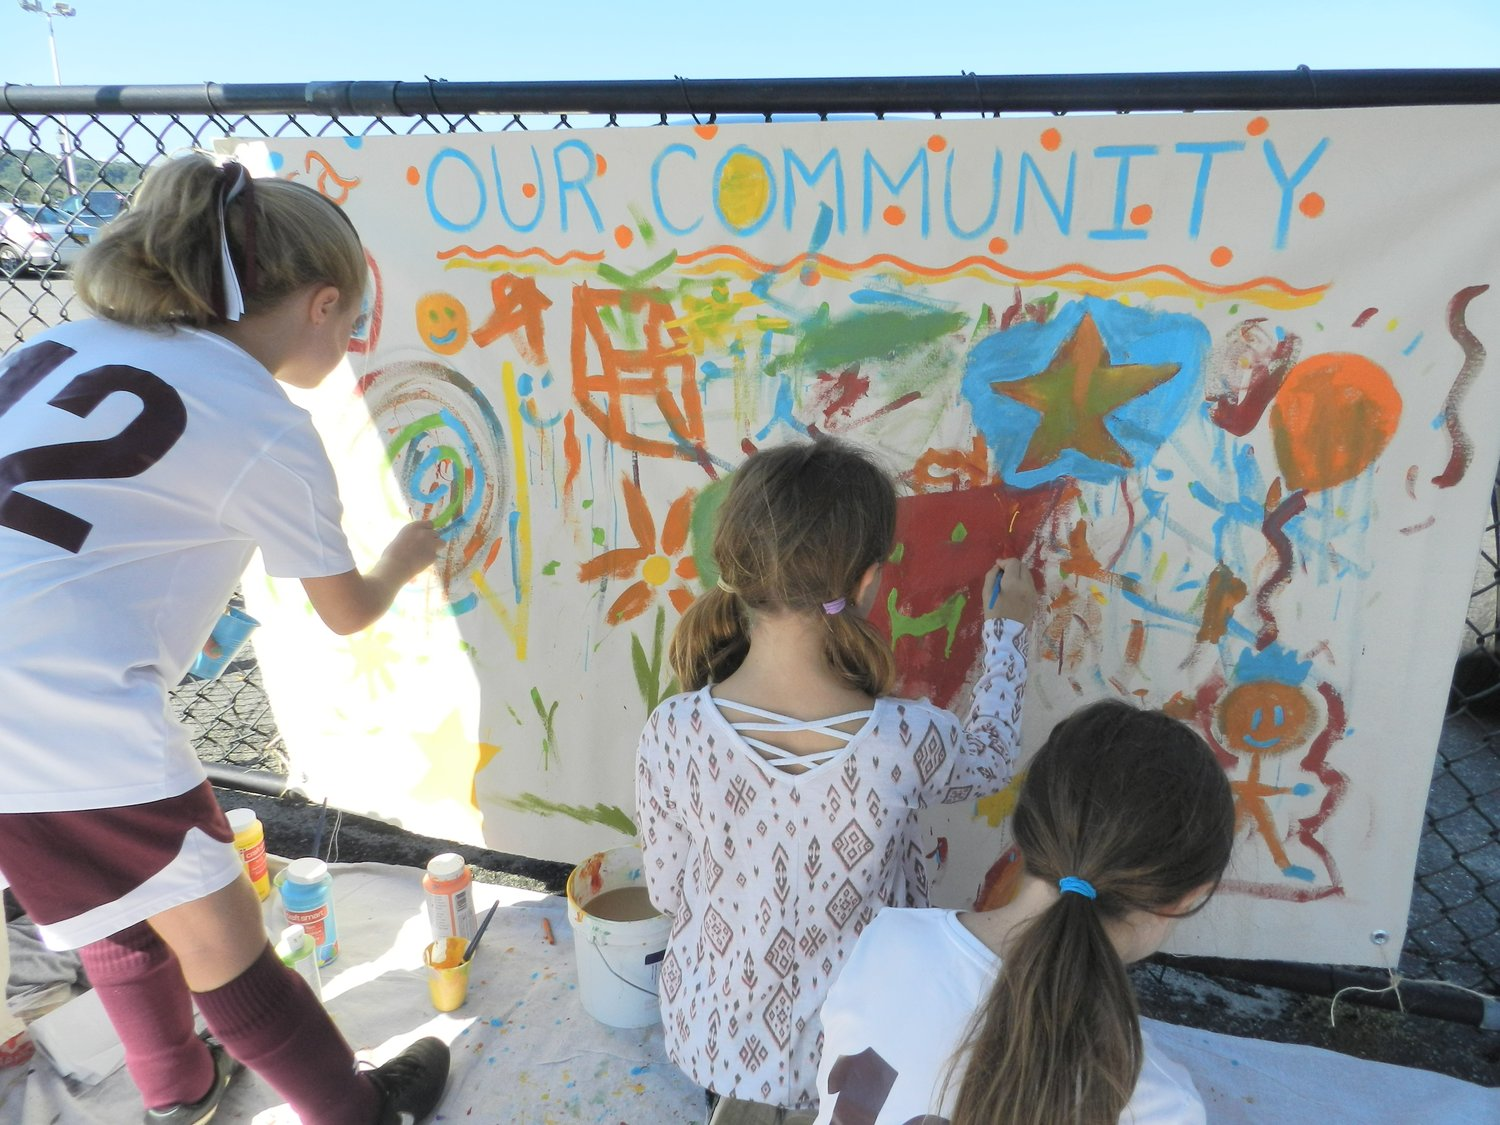 Glenwood Landing students Hailey Colbert, left, and Juliet and Abigail Monte contributed to NSCASA's community art mural.